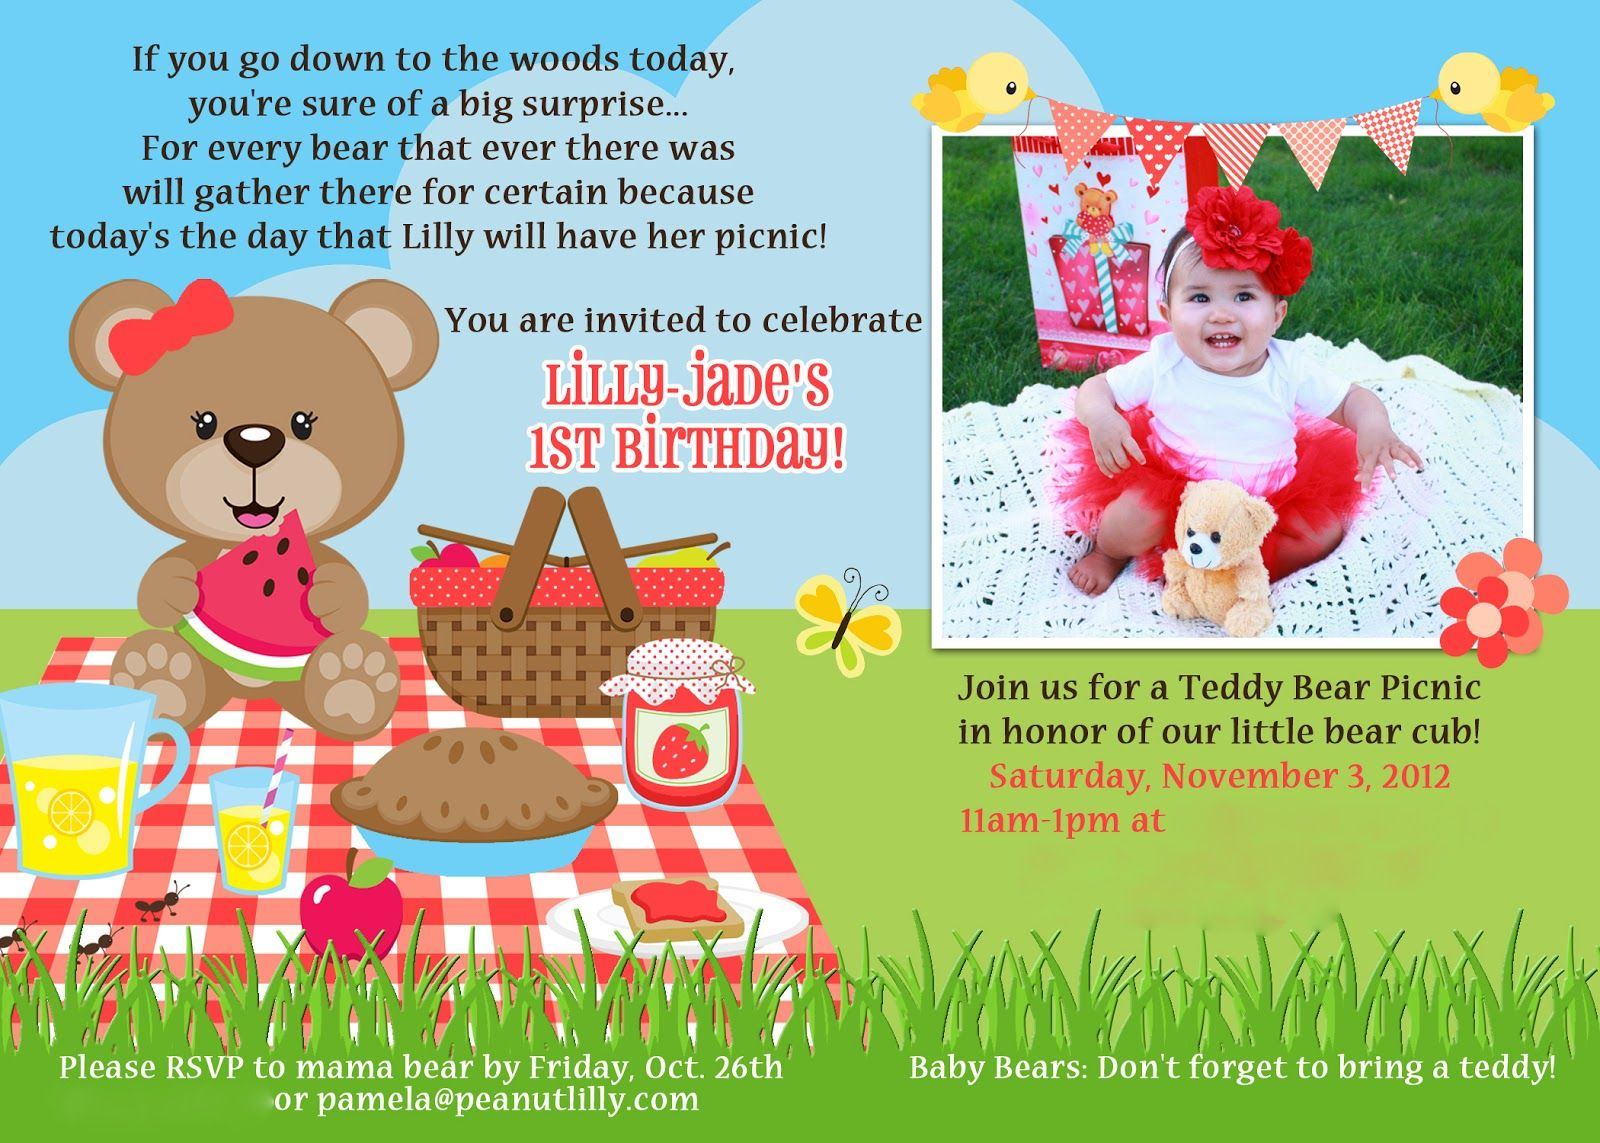 Teddy Bear Picnic Party Invites Macdonald39s Playland Lilly39s 1st – Teddy Bears Picnic Party Invitations